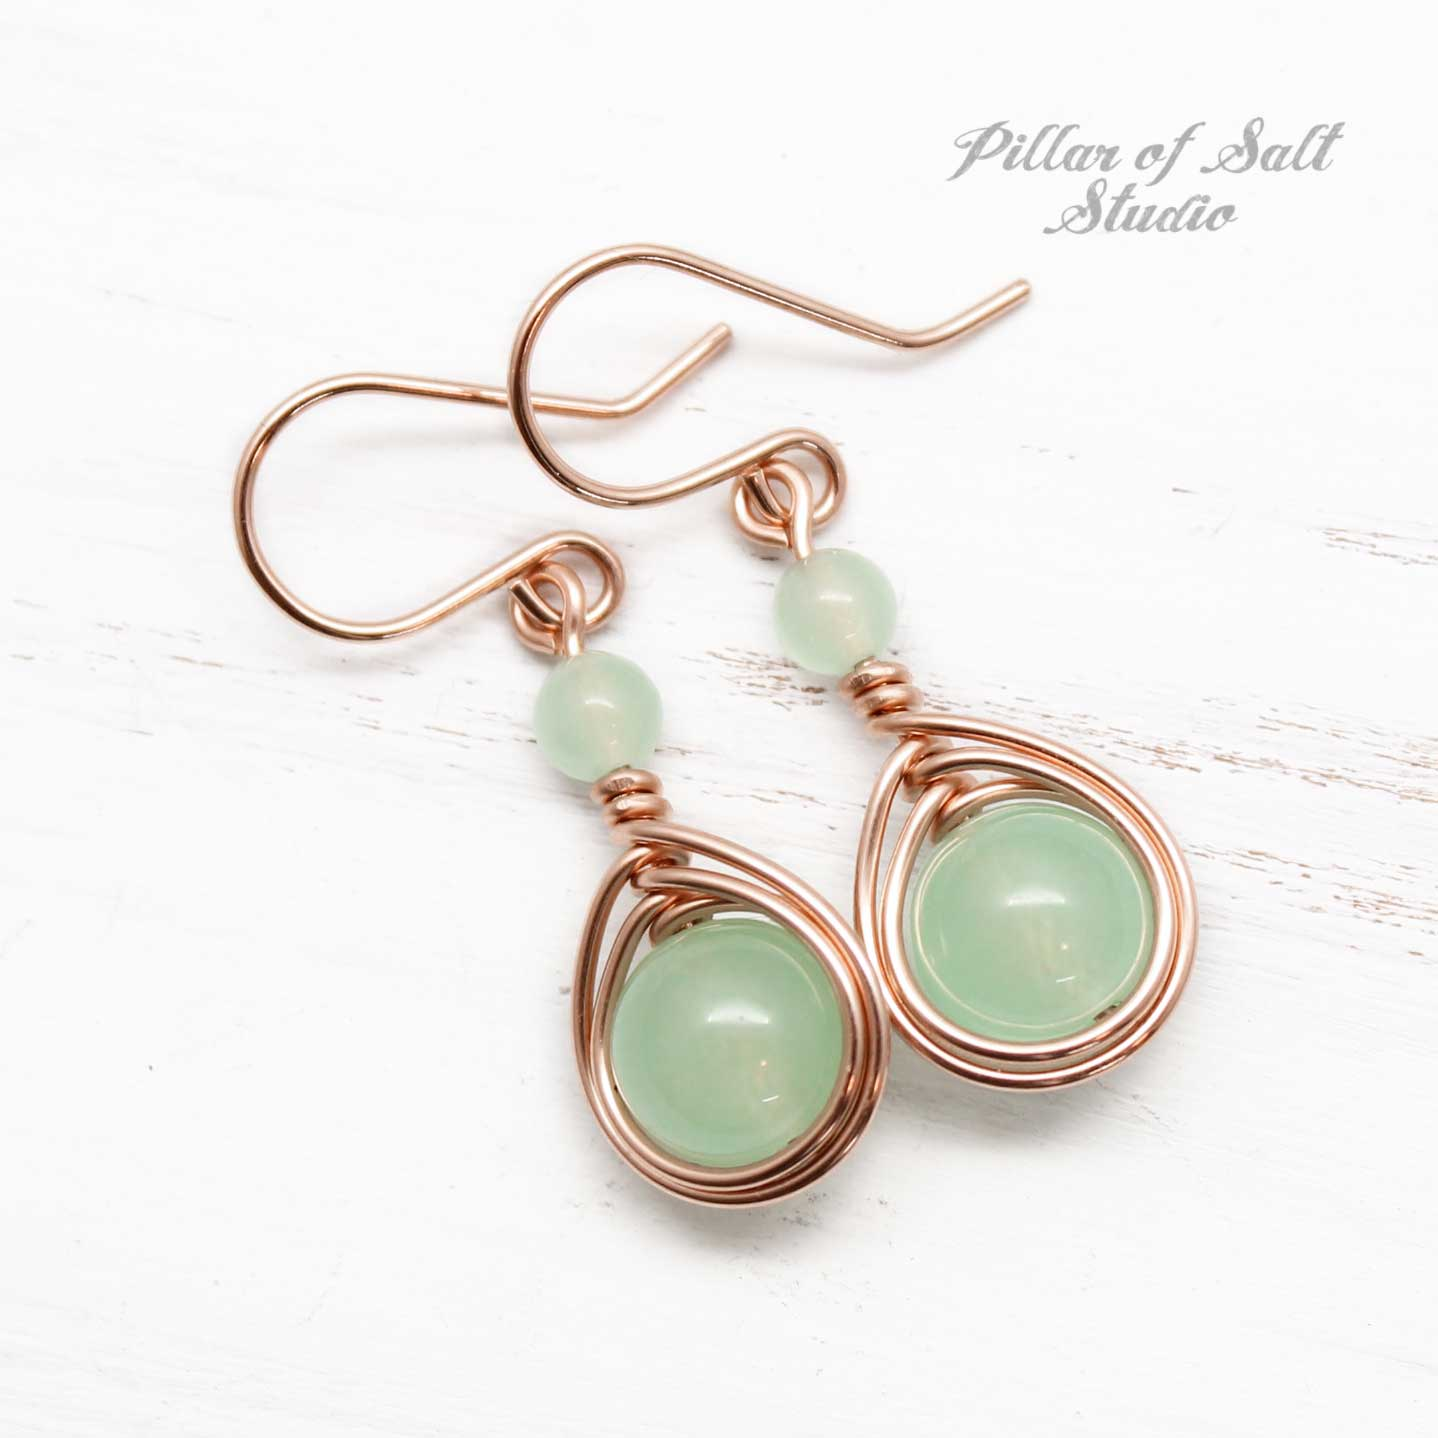 light green quartz stone with rose gold-filled wire wrapped earrings